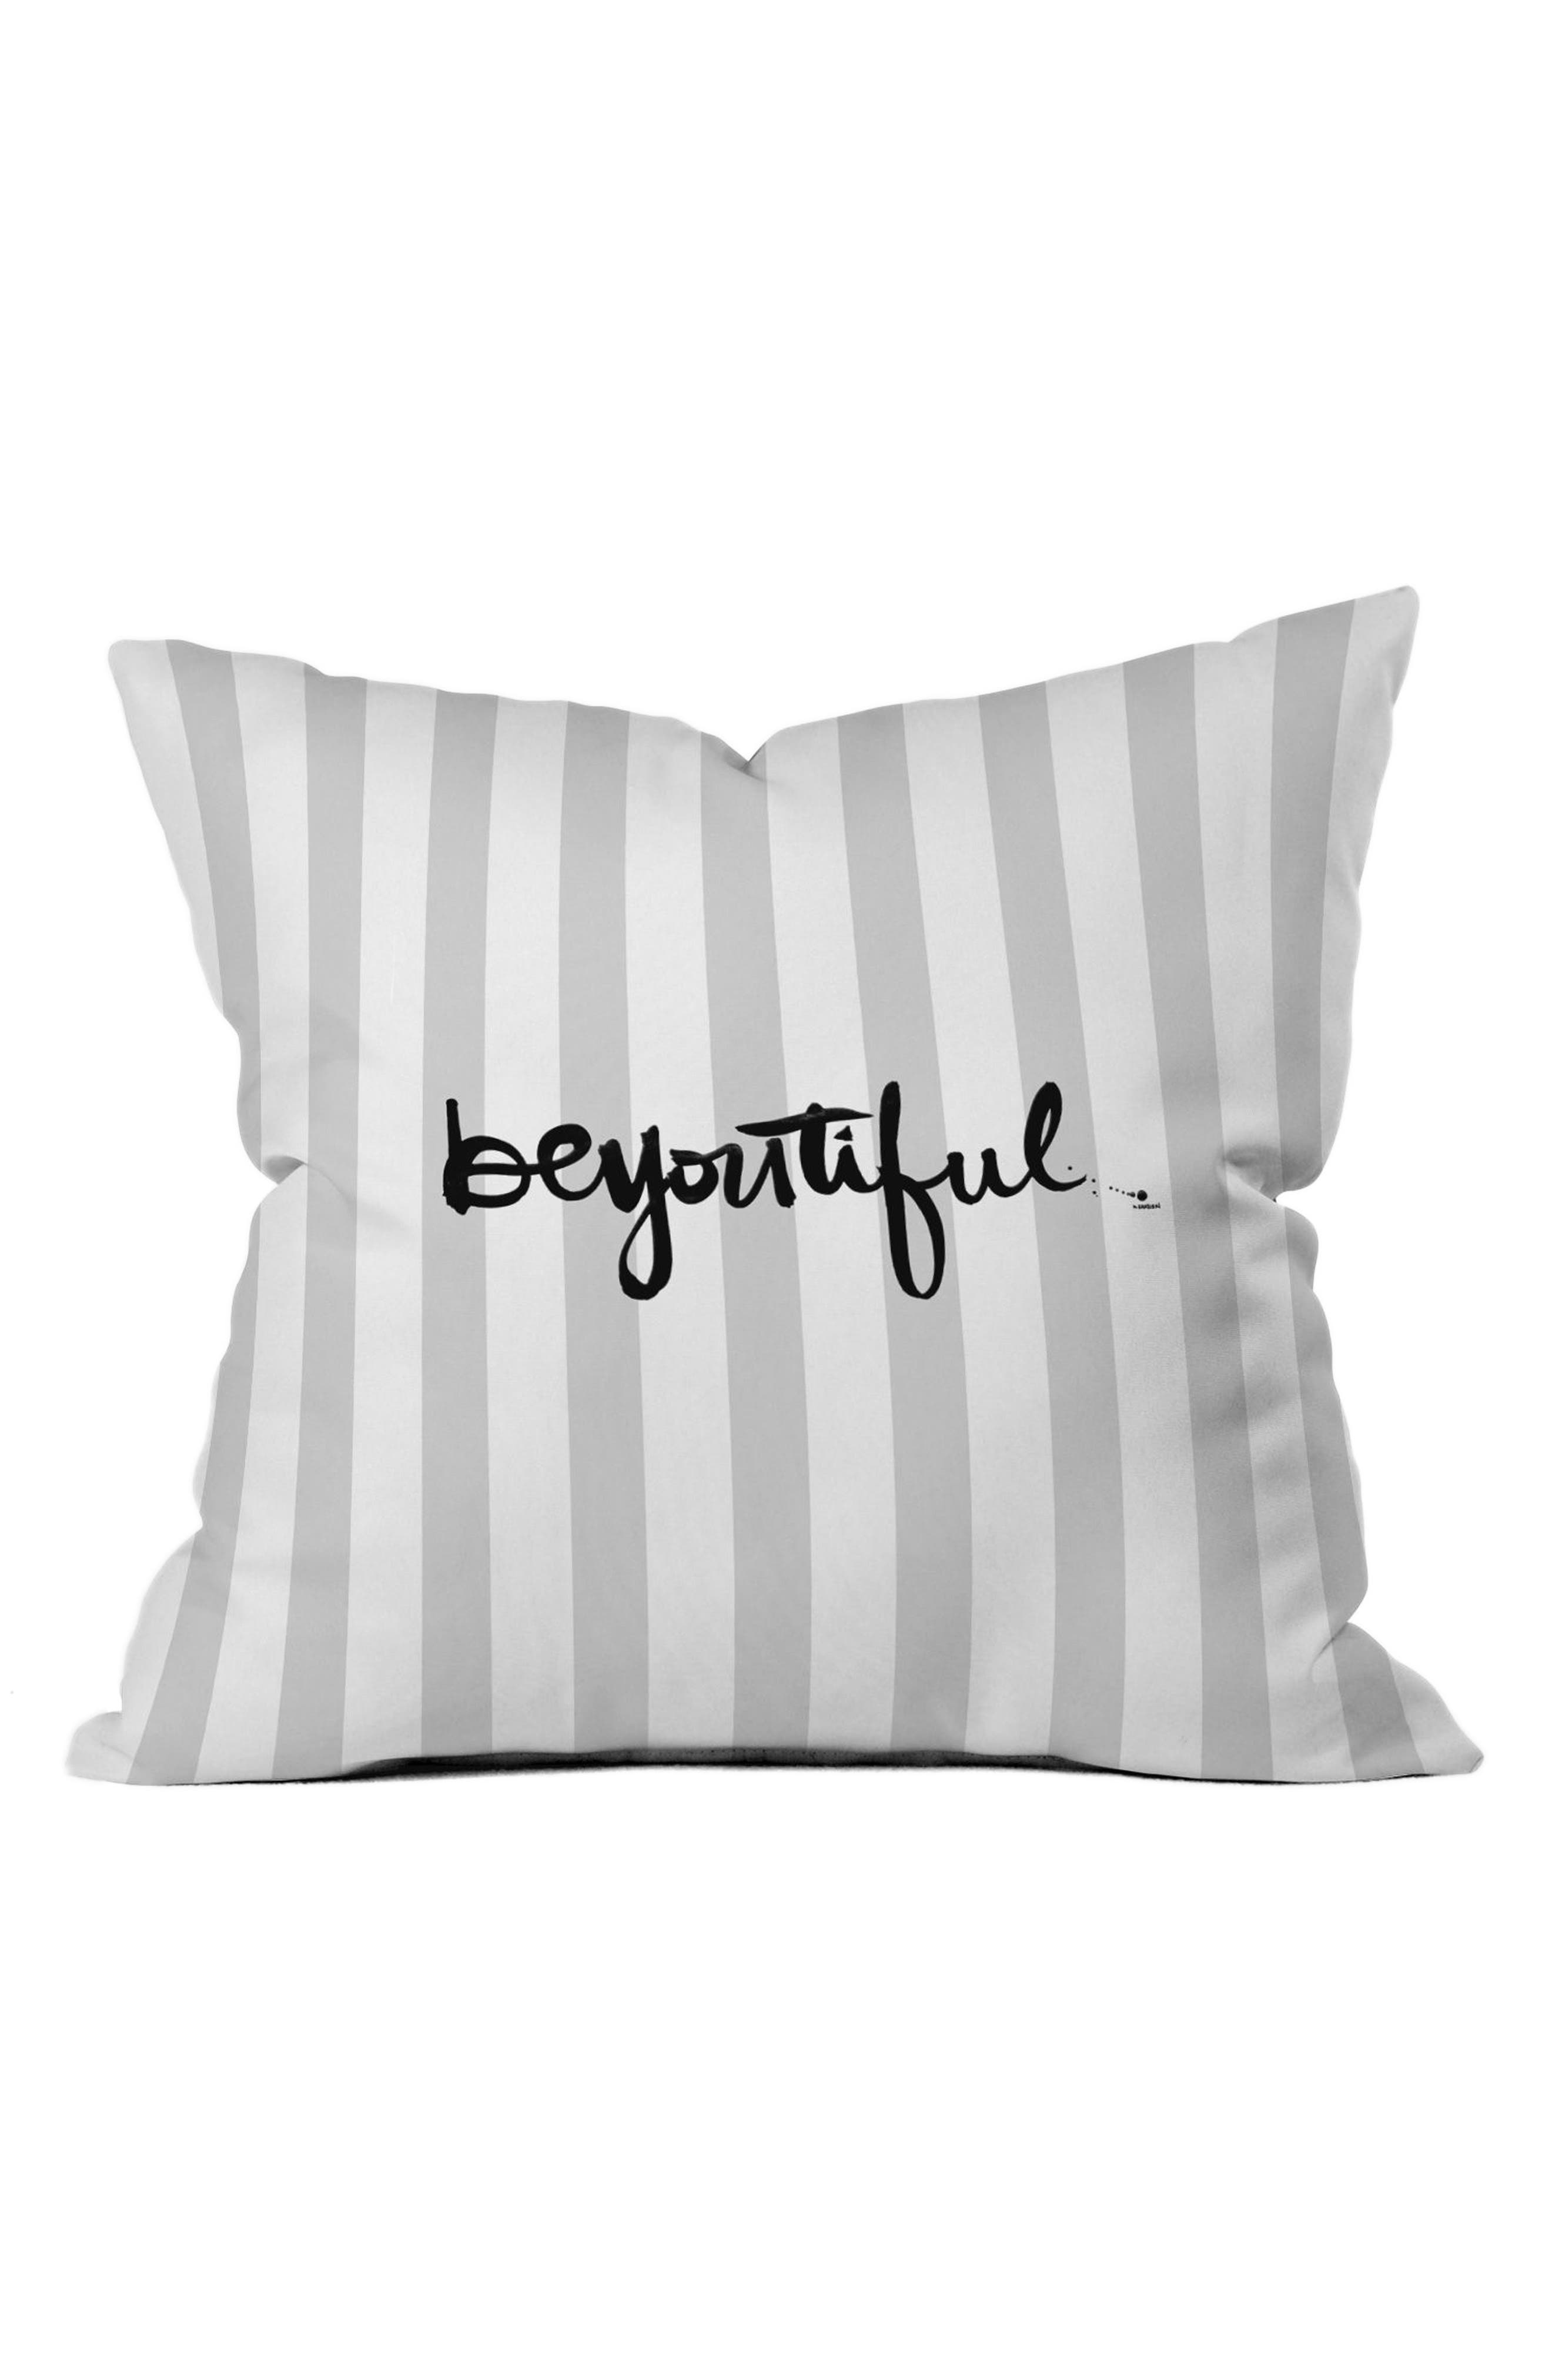 Alternate Image 1 Selected - Deny Designs Be-you-tiful Pillow